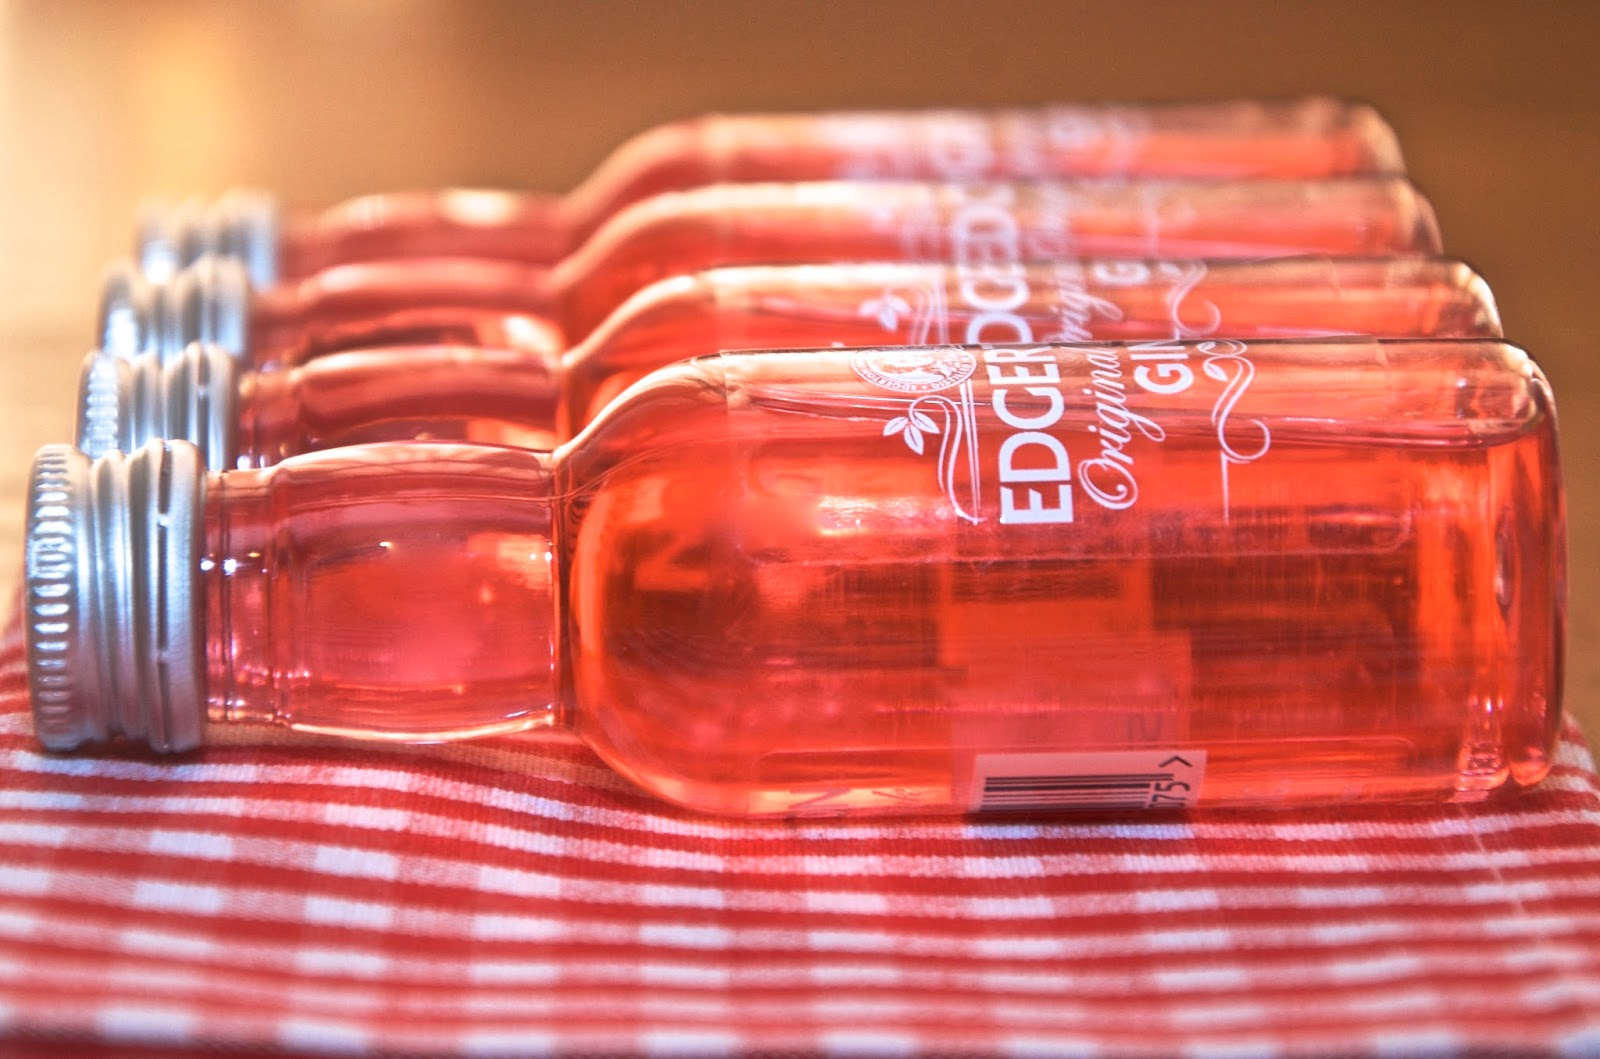 Edgerton Pink Gin on red gingham mat